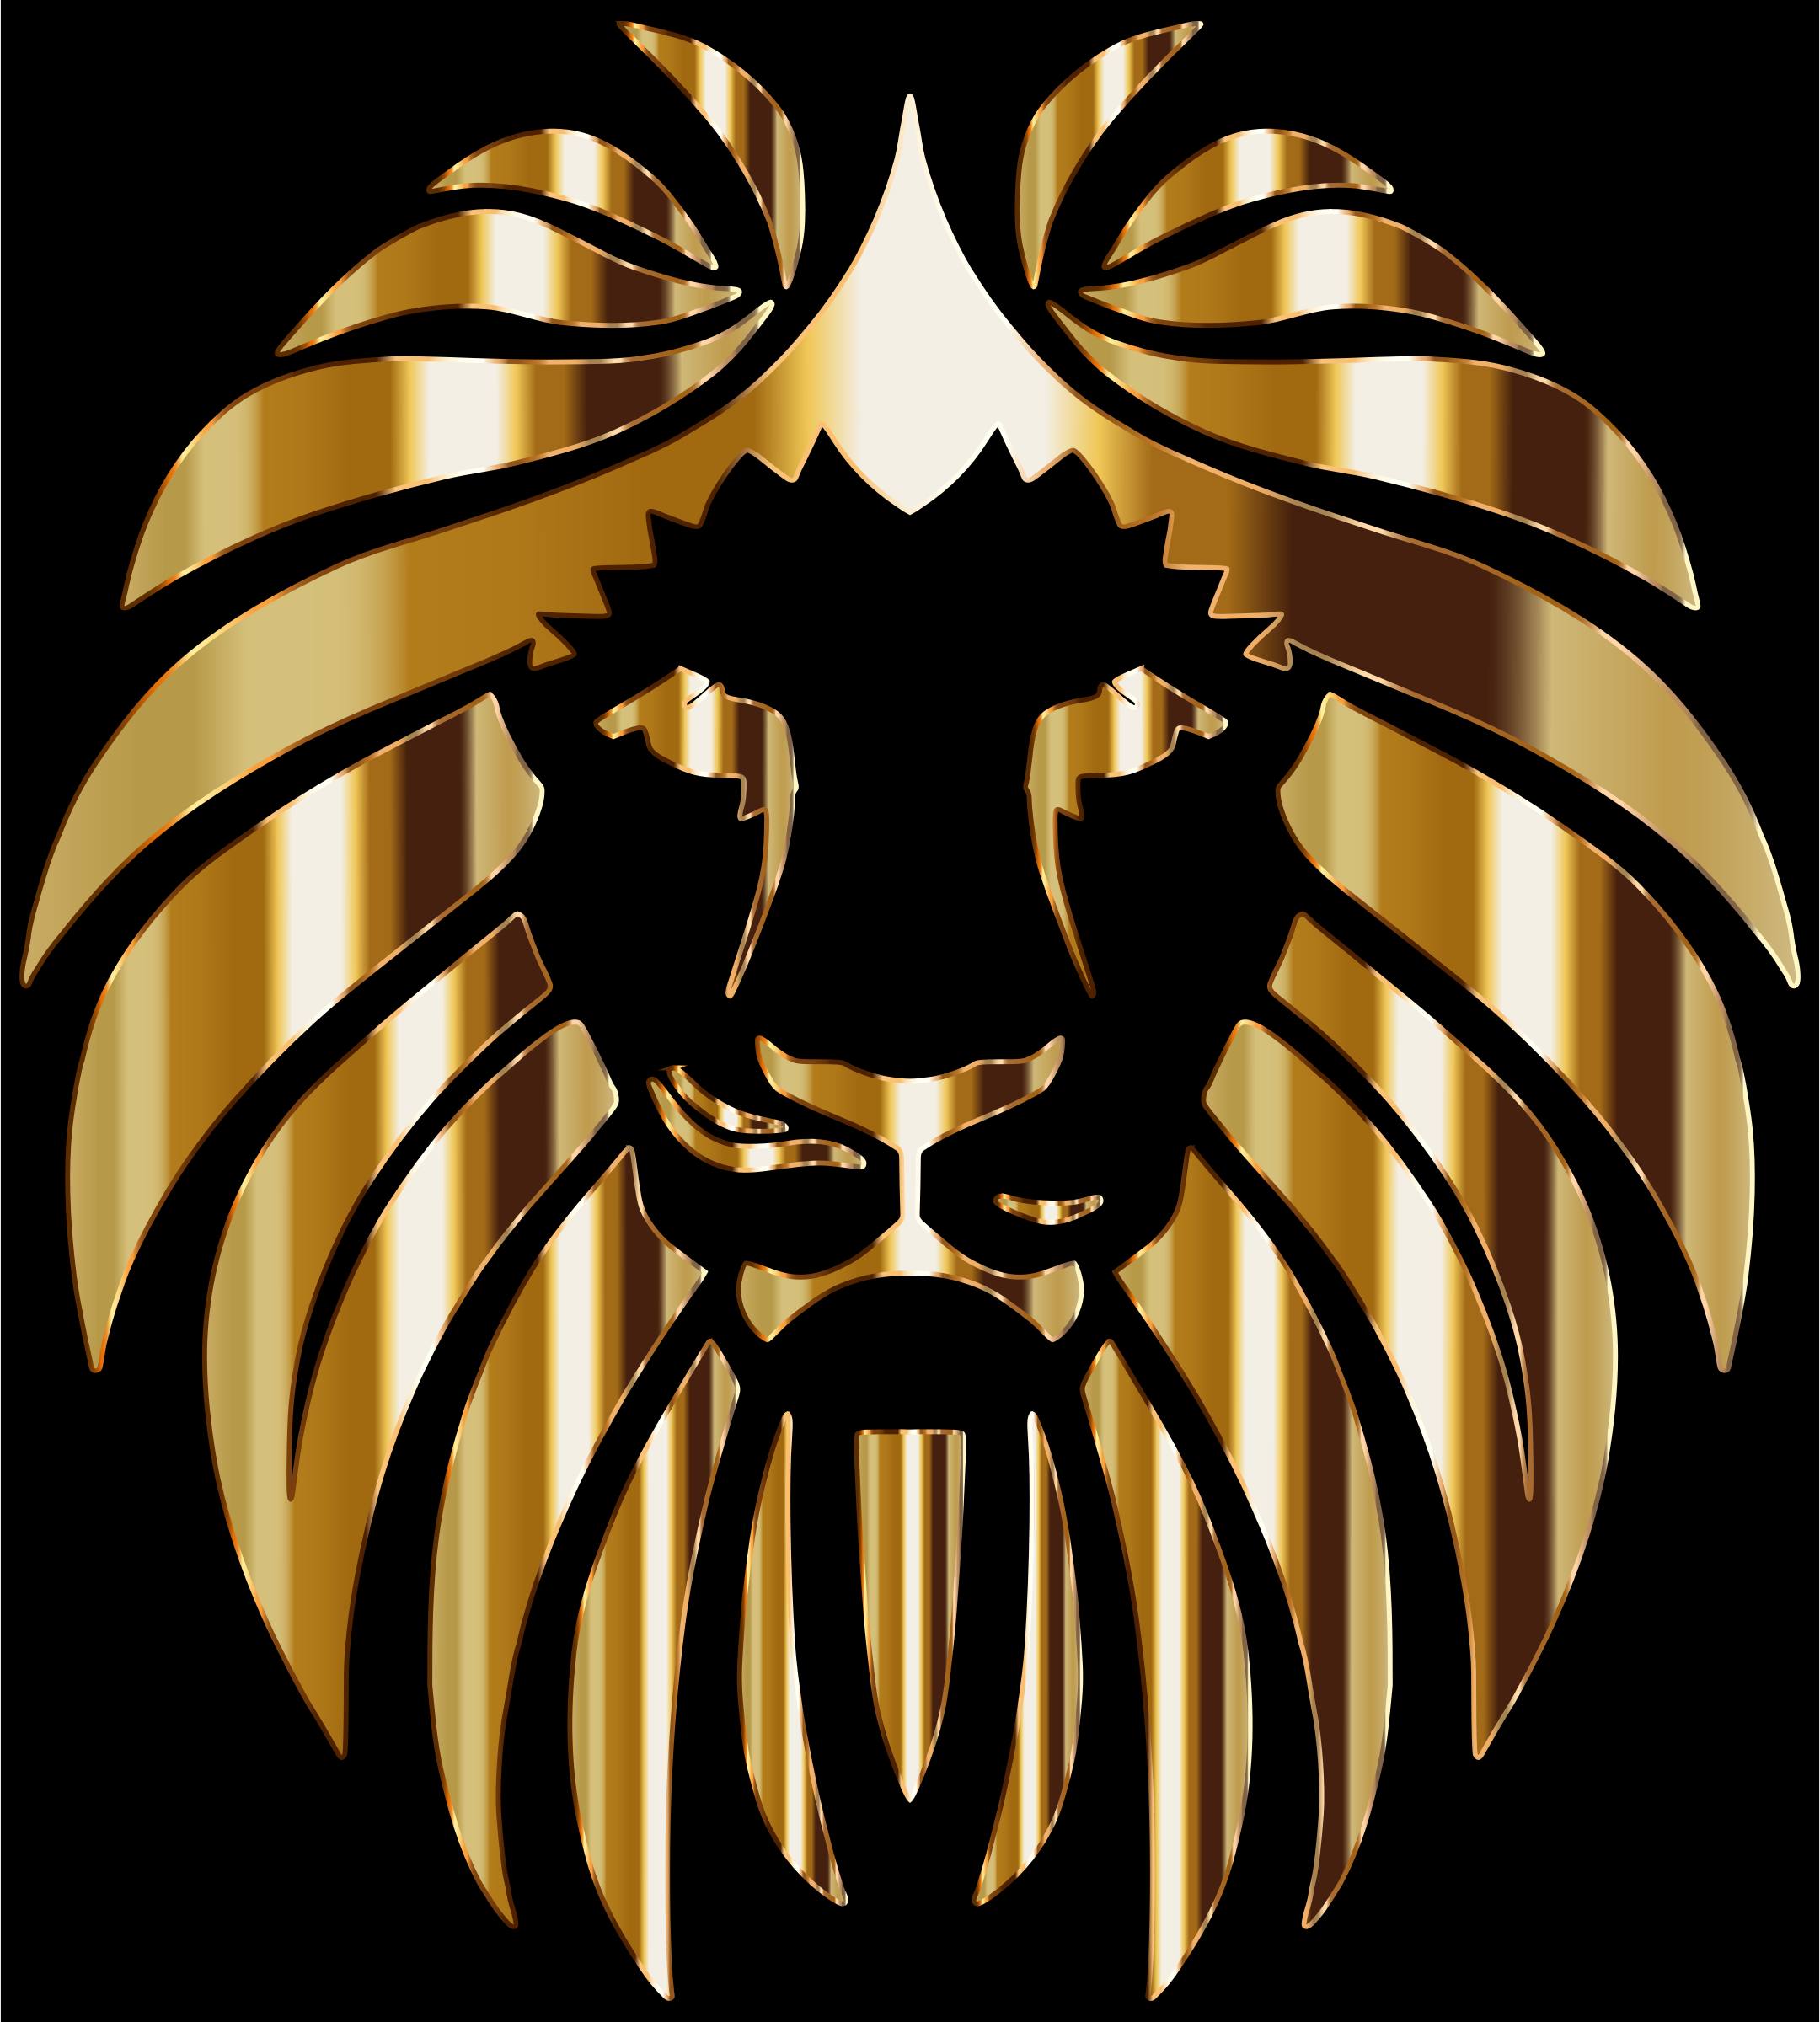 Golden Lion 3 by GDJ